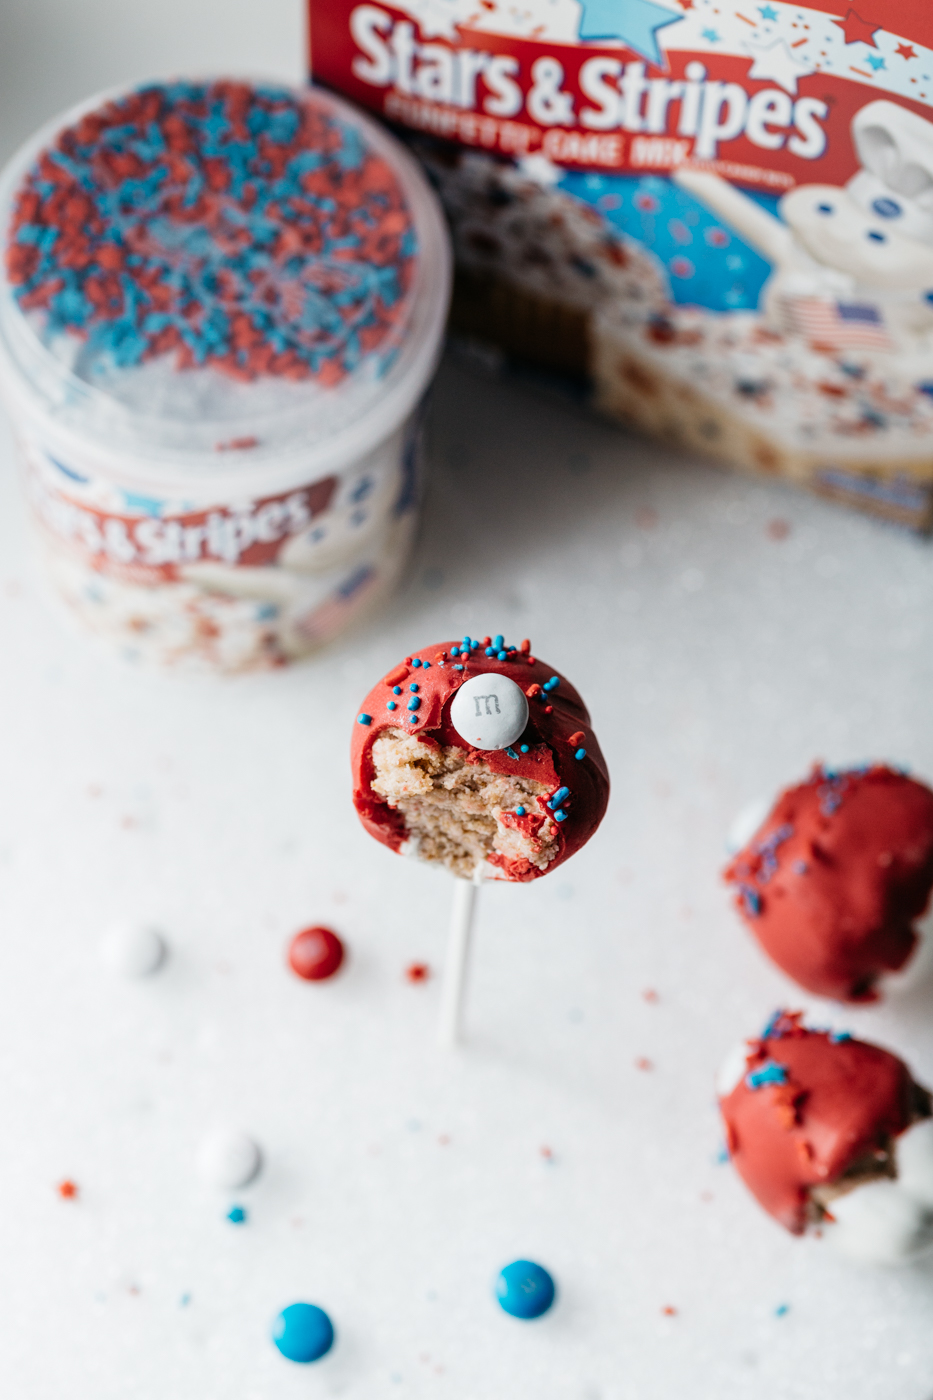 cupcake pops, cake pops recipe, pillsbury stars and stripes, 4th of july baking, the kentucky gent, southern cooking blog